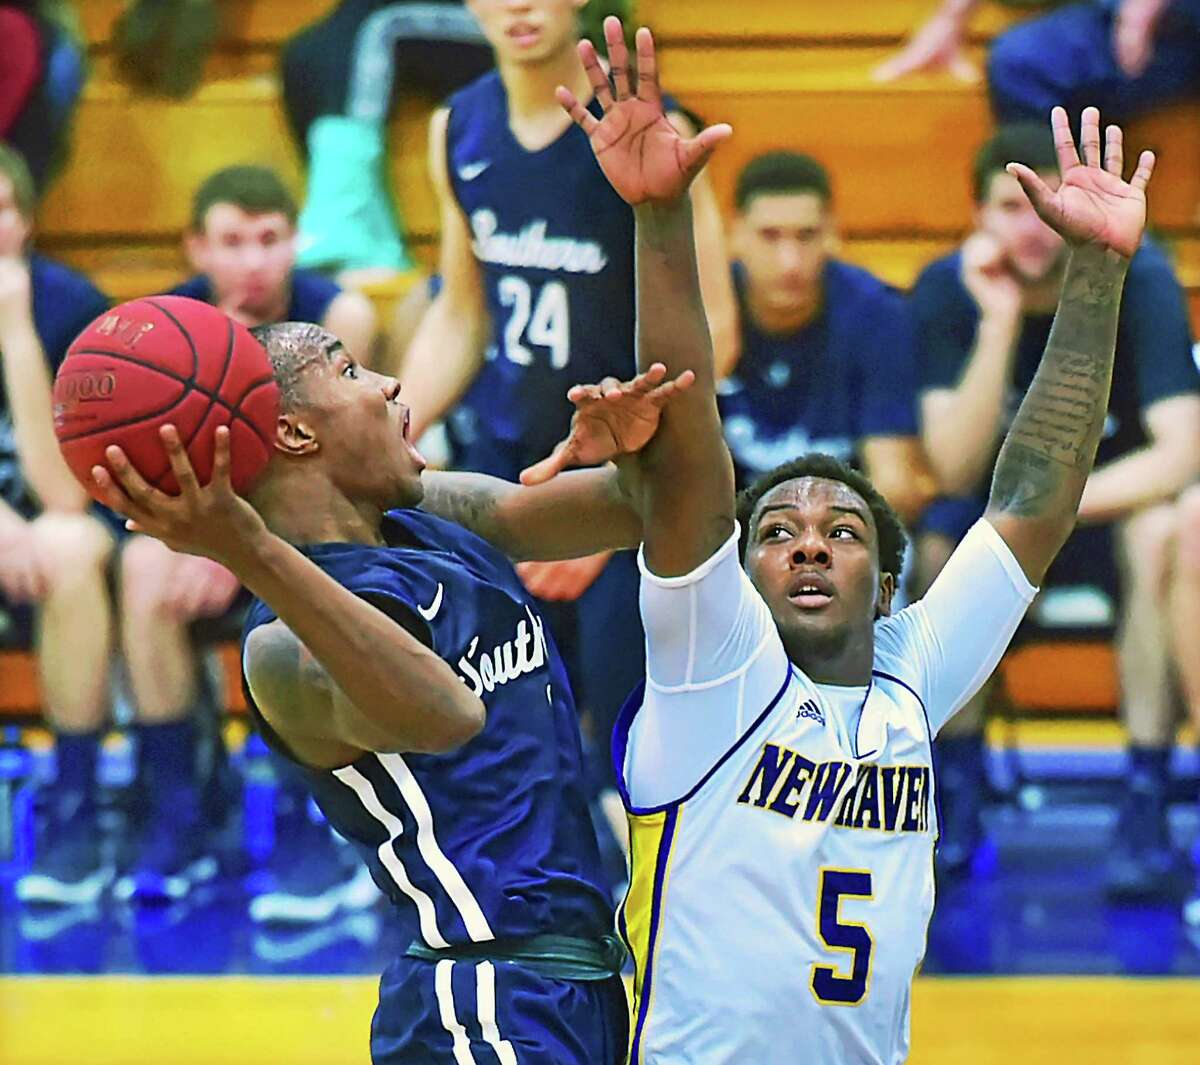 (Catherine Avalone - New Haven Register) SCSU's freshman guard Isaiah McLeod elevates for a shot as UNH junior guard Jemal Mosley defends, Wednesday, December 2, 2015 at the Charger Gymnasium at the University of New Haven. The Chargers won, 80-60.